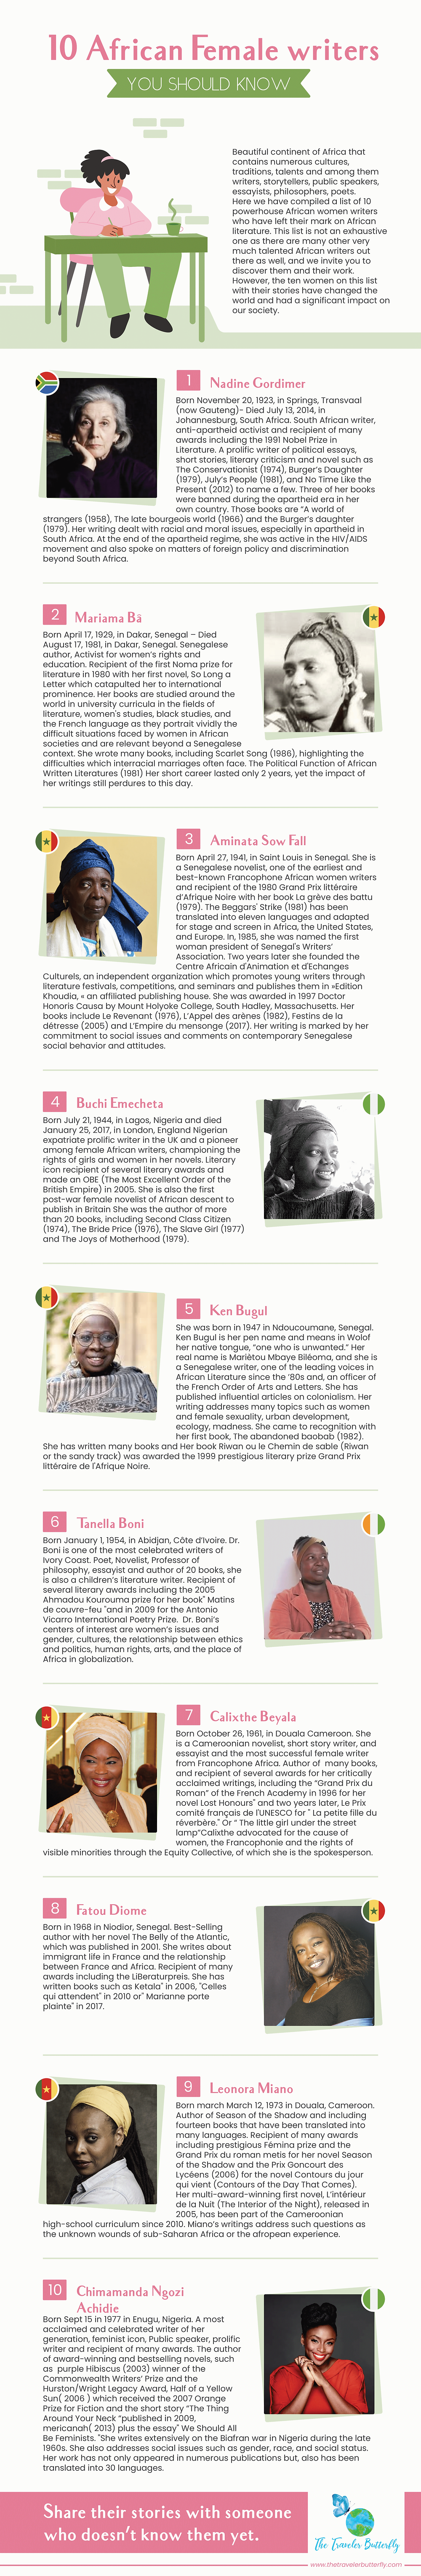 10 African Female Writers You Should Know